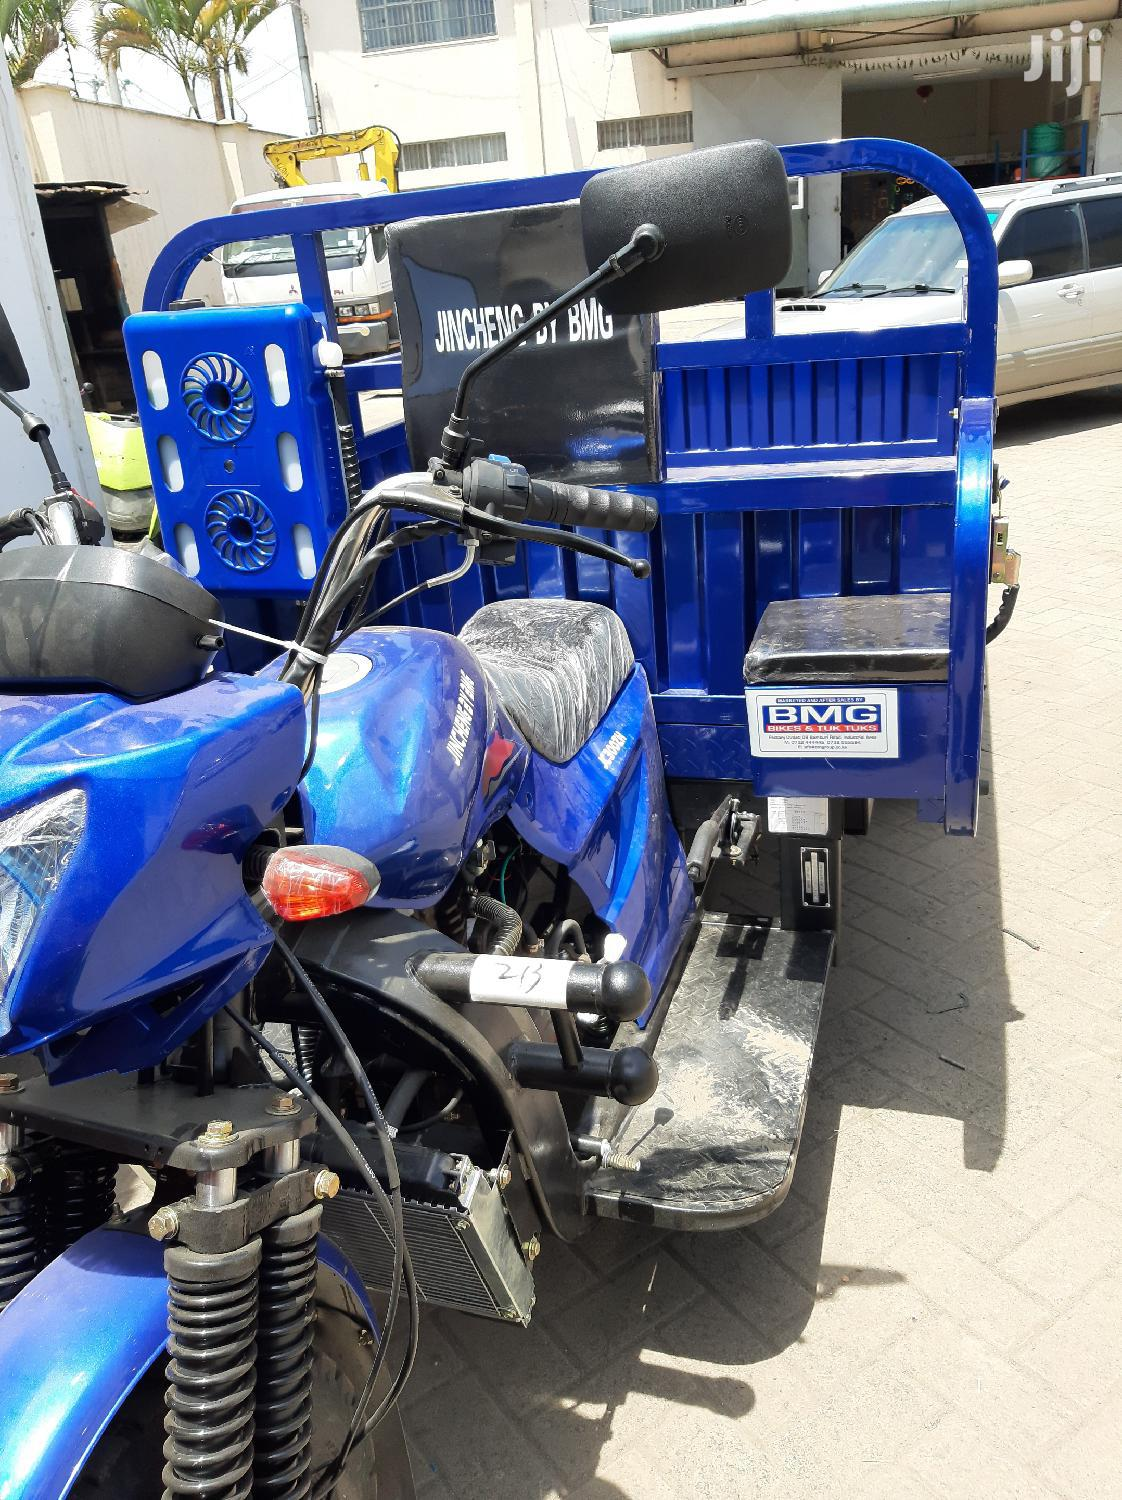 New Jincheng Custom 50 2020 Blue | Motorcycles & Scooters for sale in Landimawe, Nairobi, Kenya